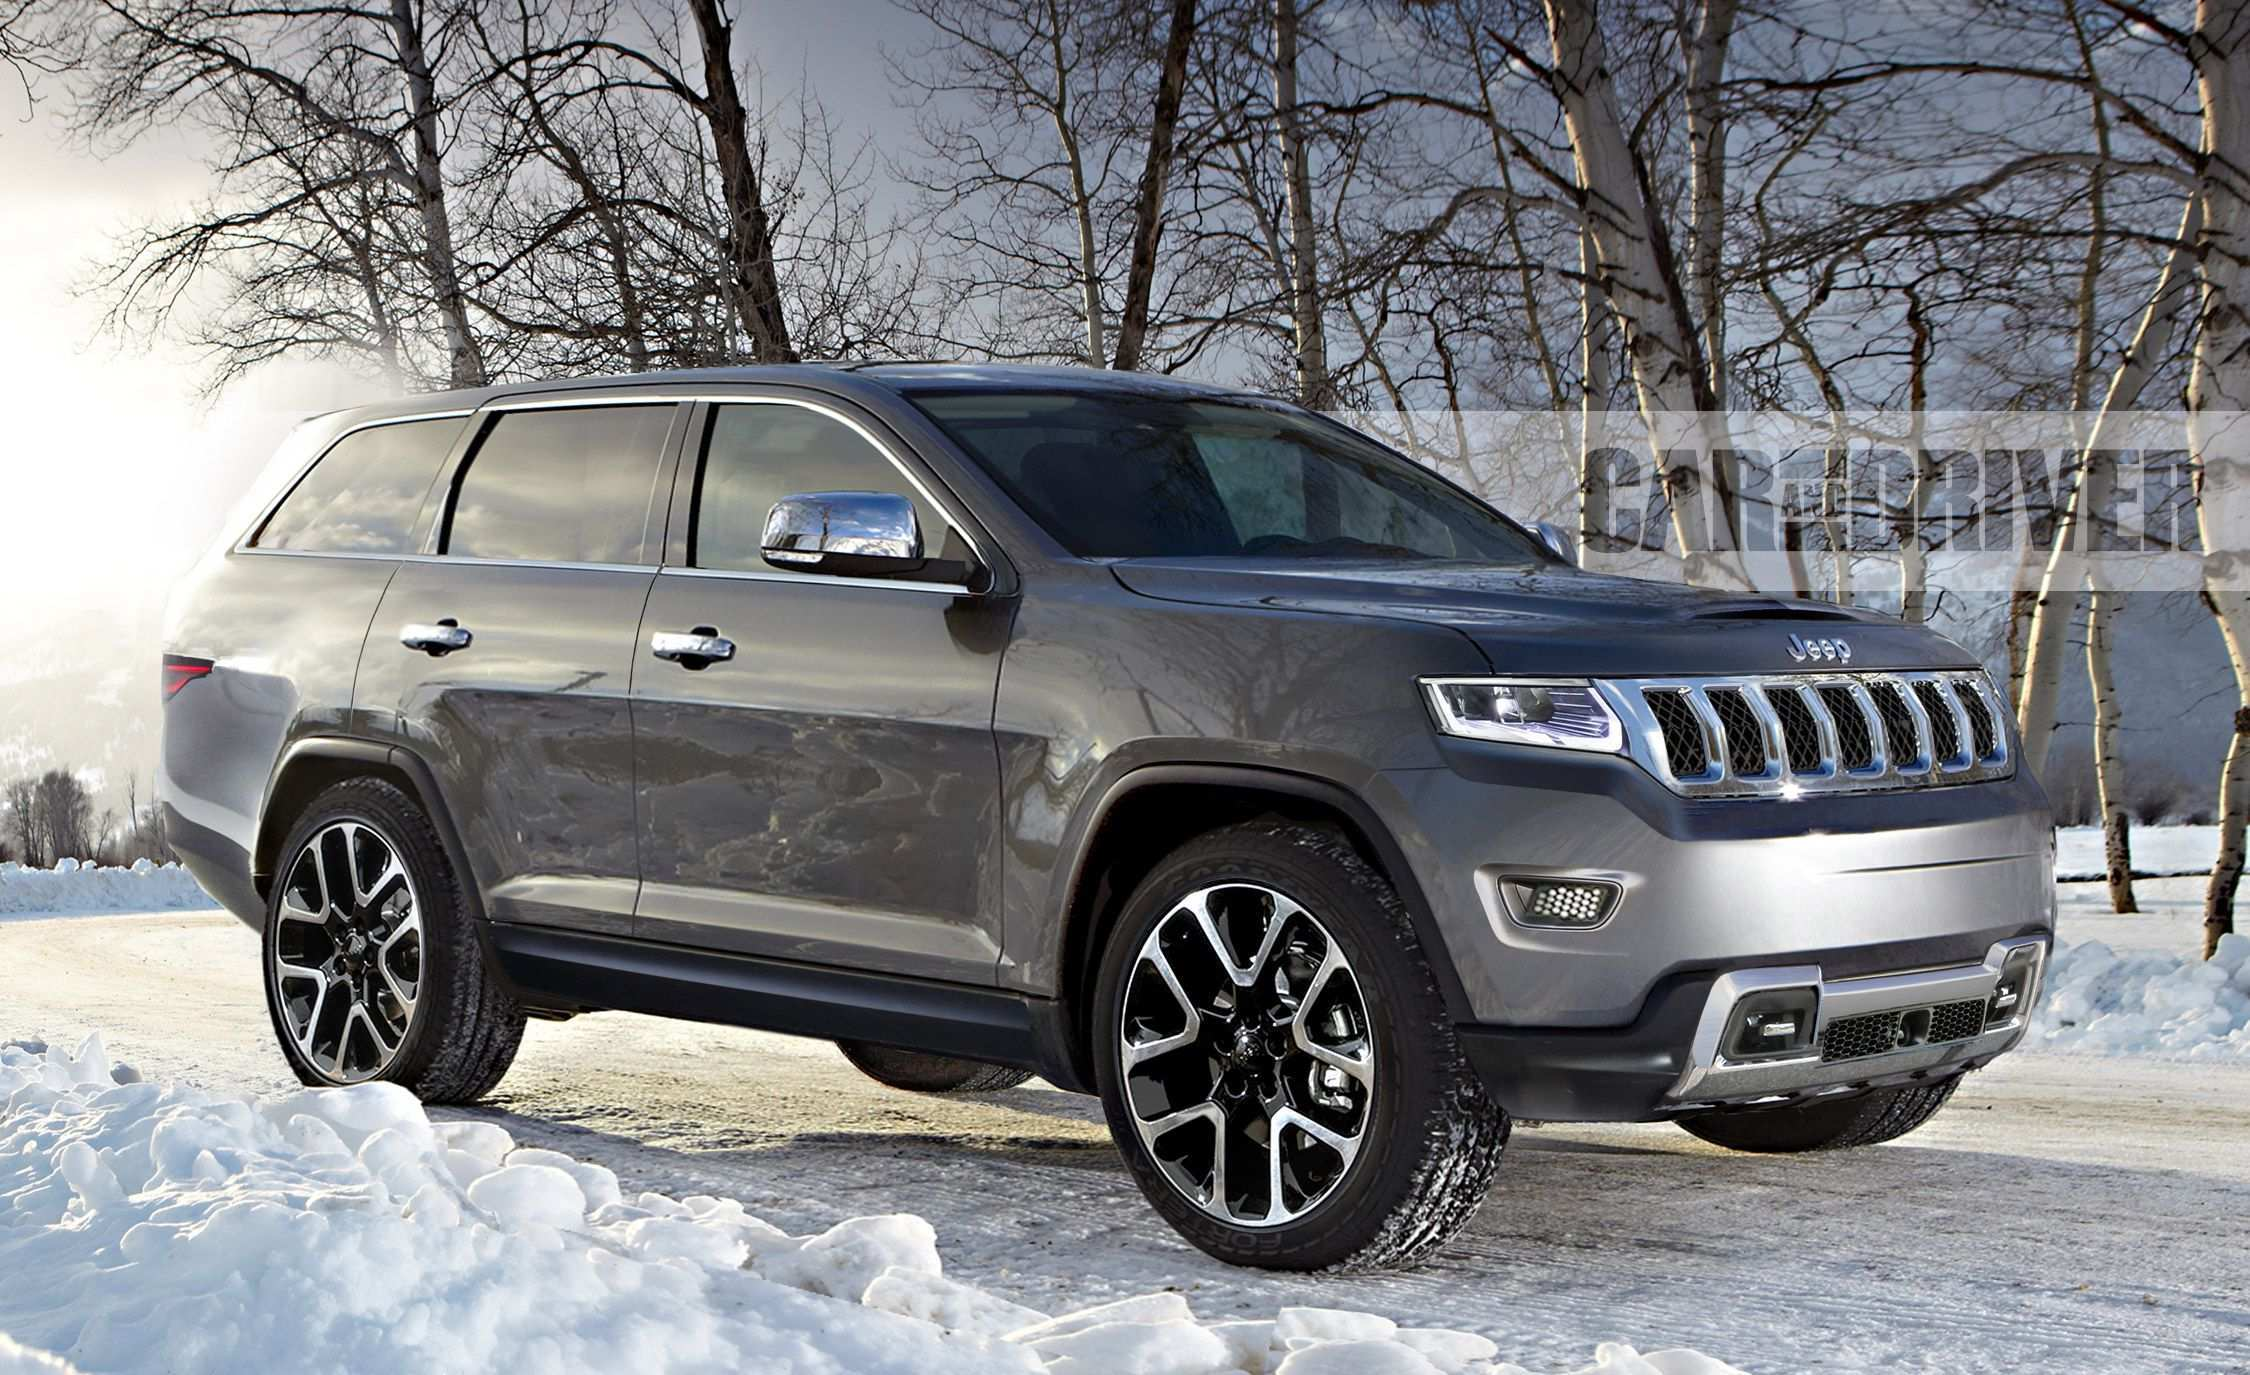 41 Gallery of When Will The 2020 Jeep Grand Cherokee Be Released Exterior by When Will The 2020 Jeep Grand Cherokee Be Released